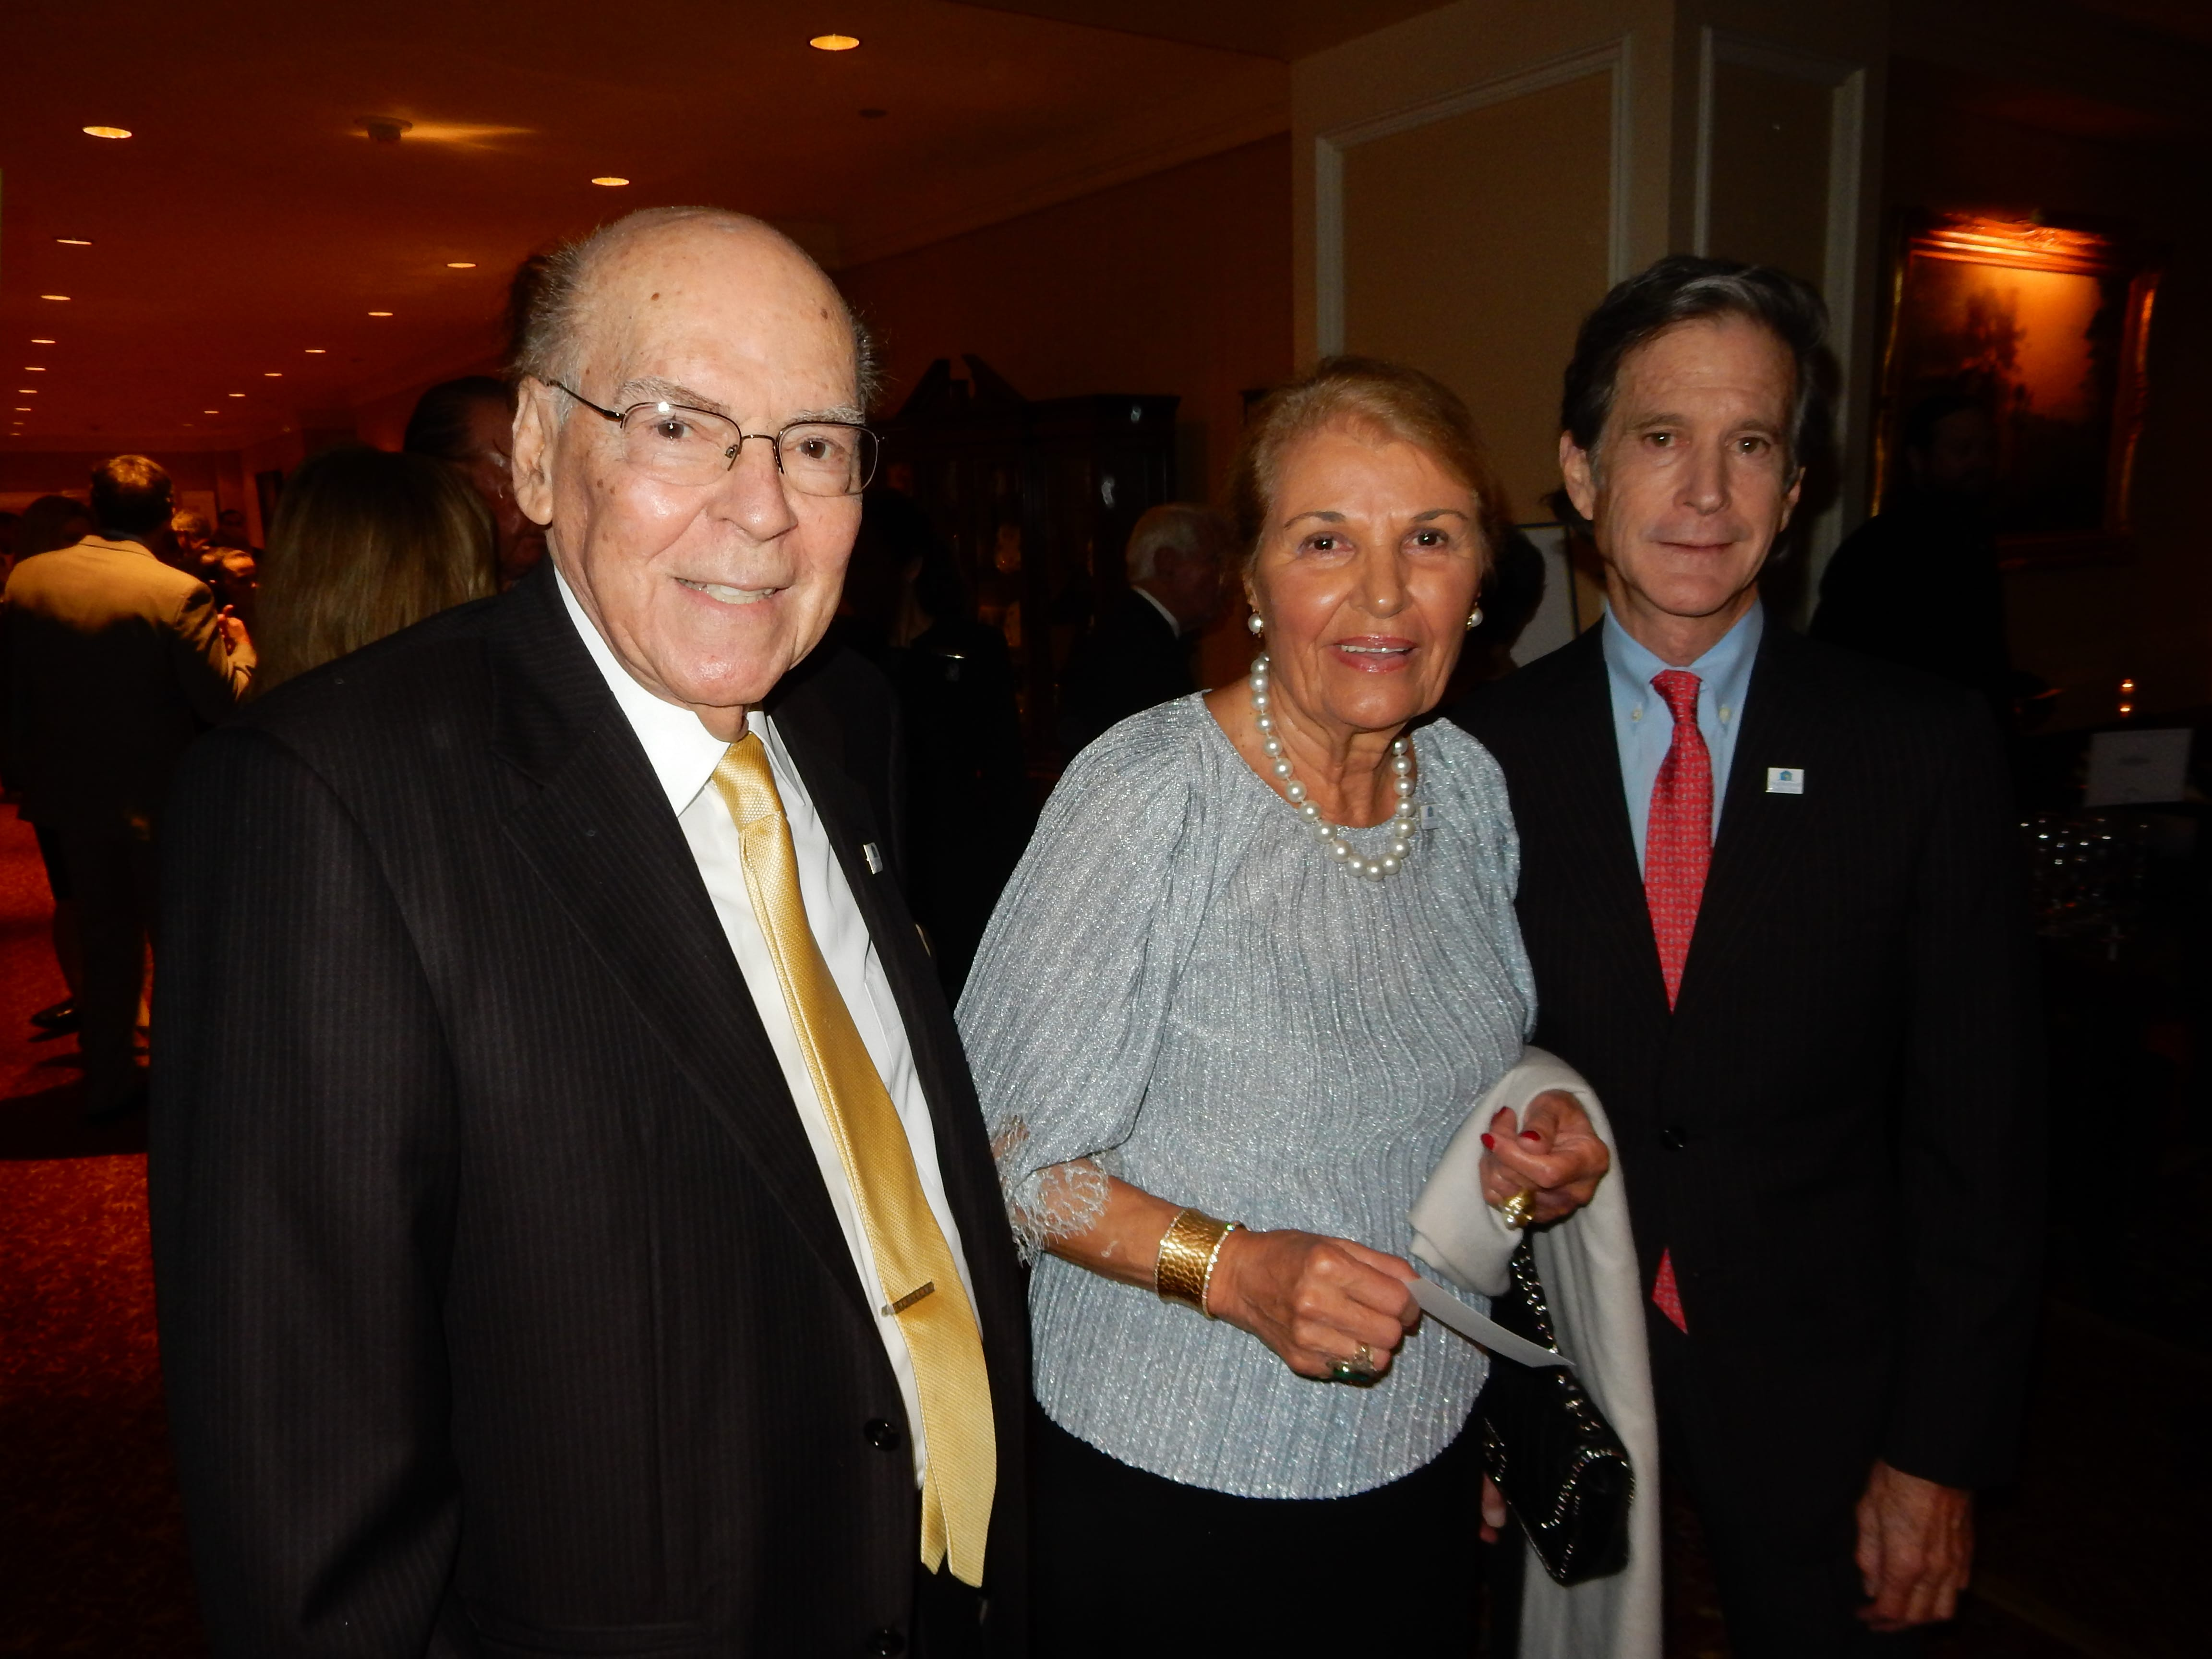 Dr Chris Papadopolous and Mary Bongiovanns and Dr. Robert Tober